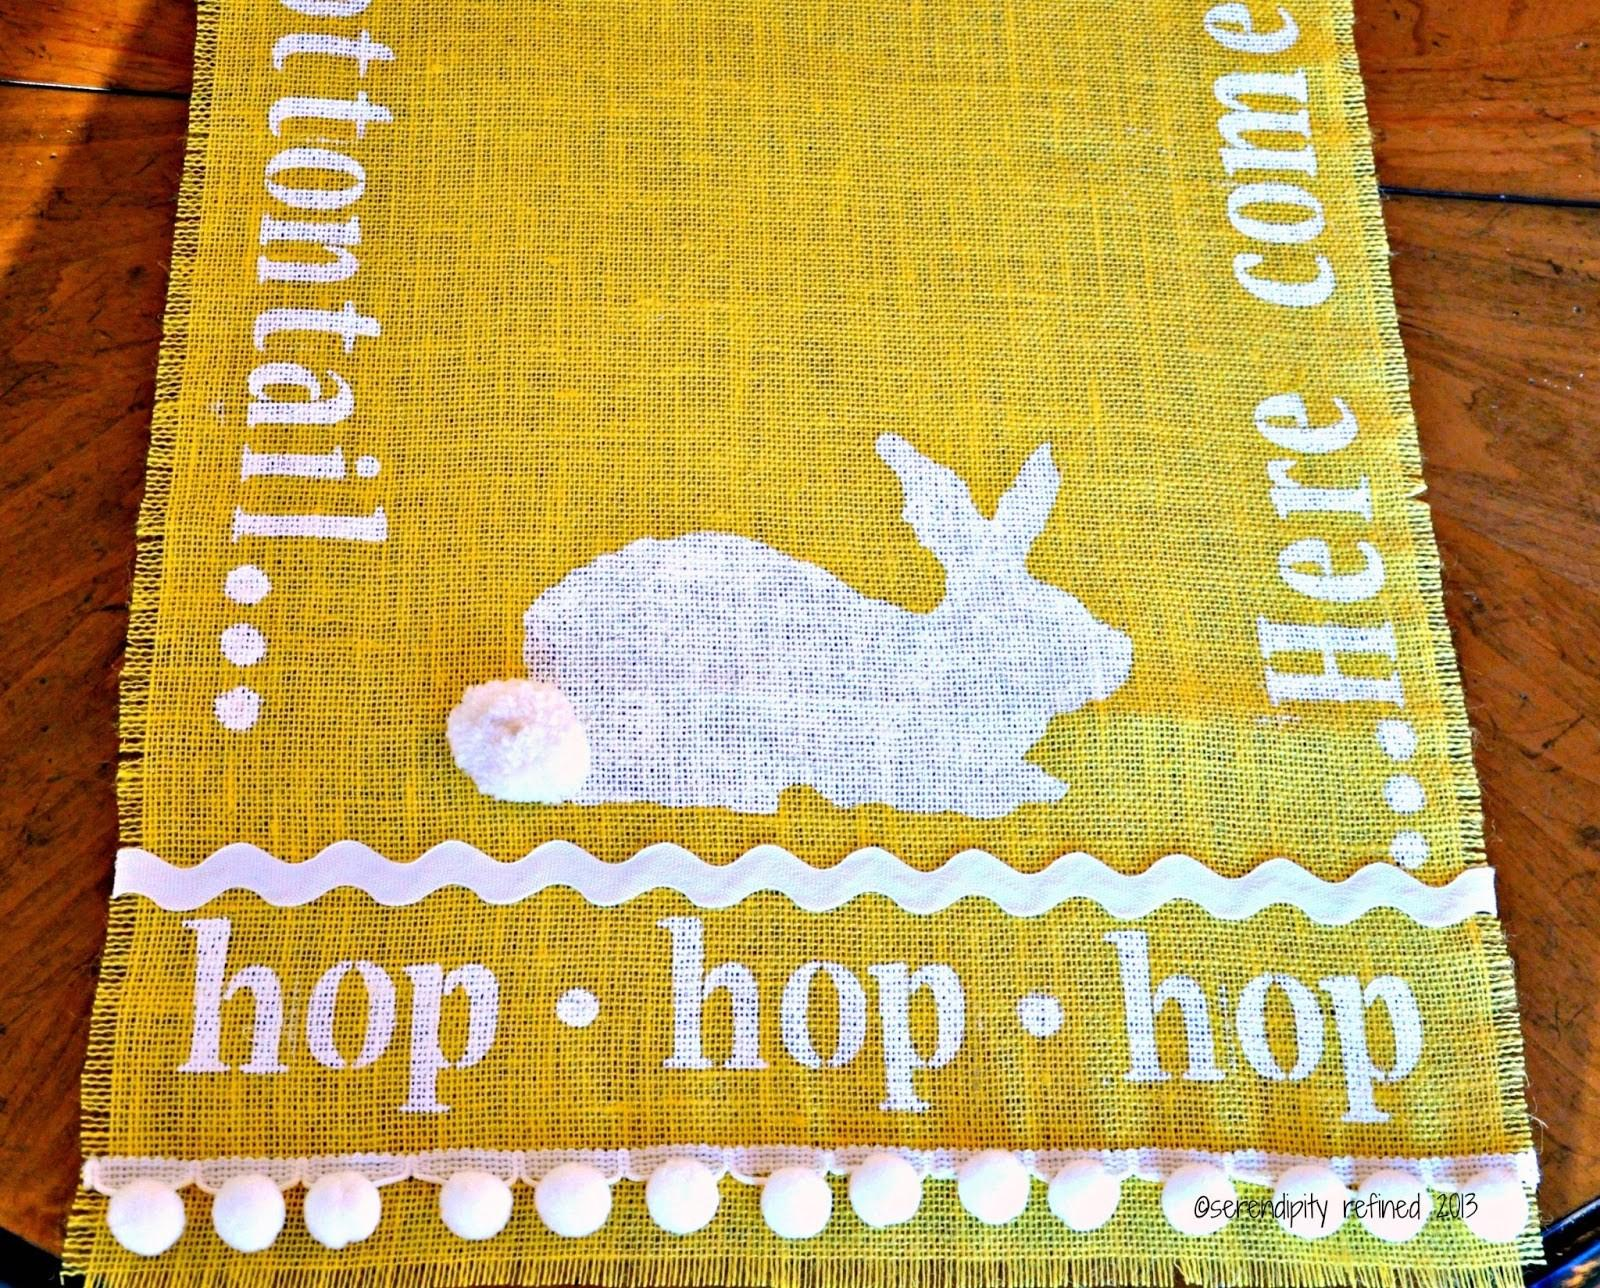 Serendipity Refined Blog Stenciled Burlap Bunny Table